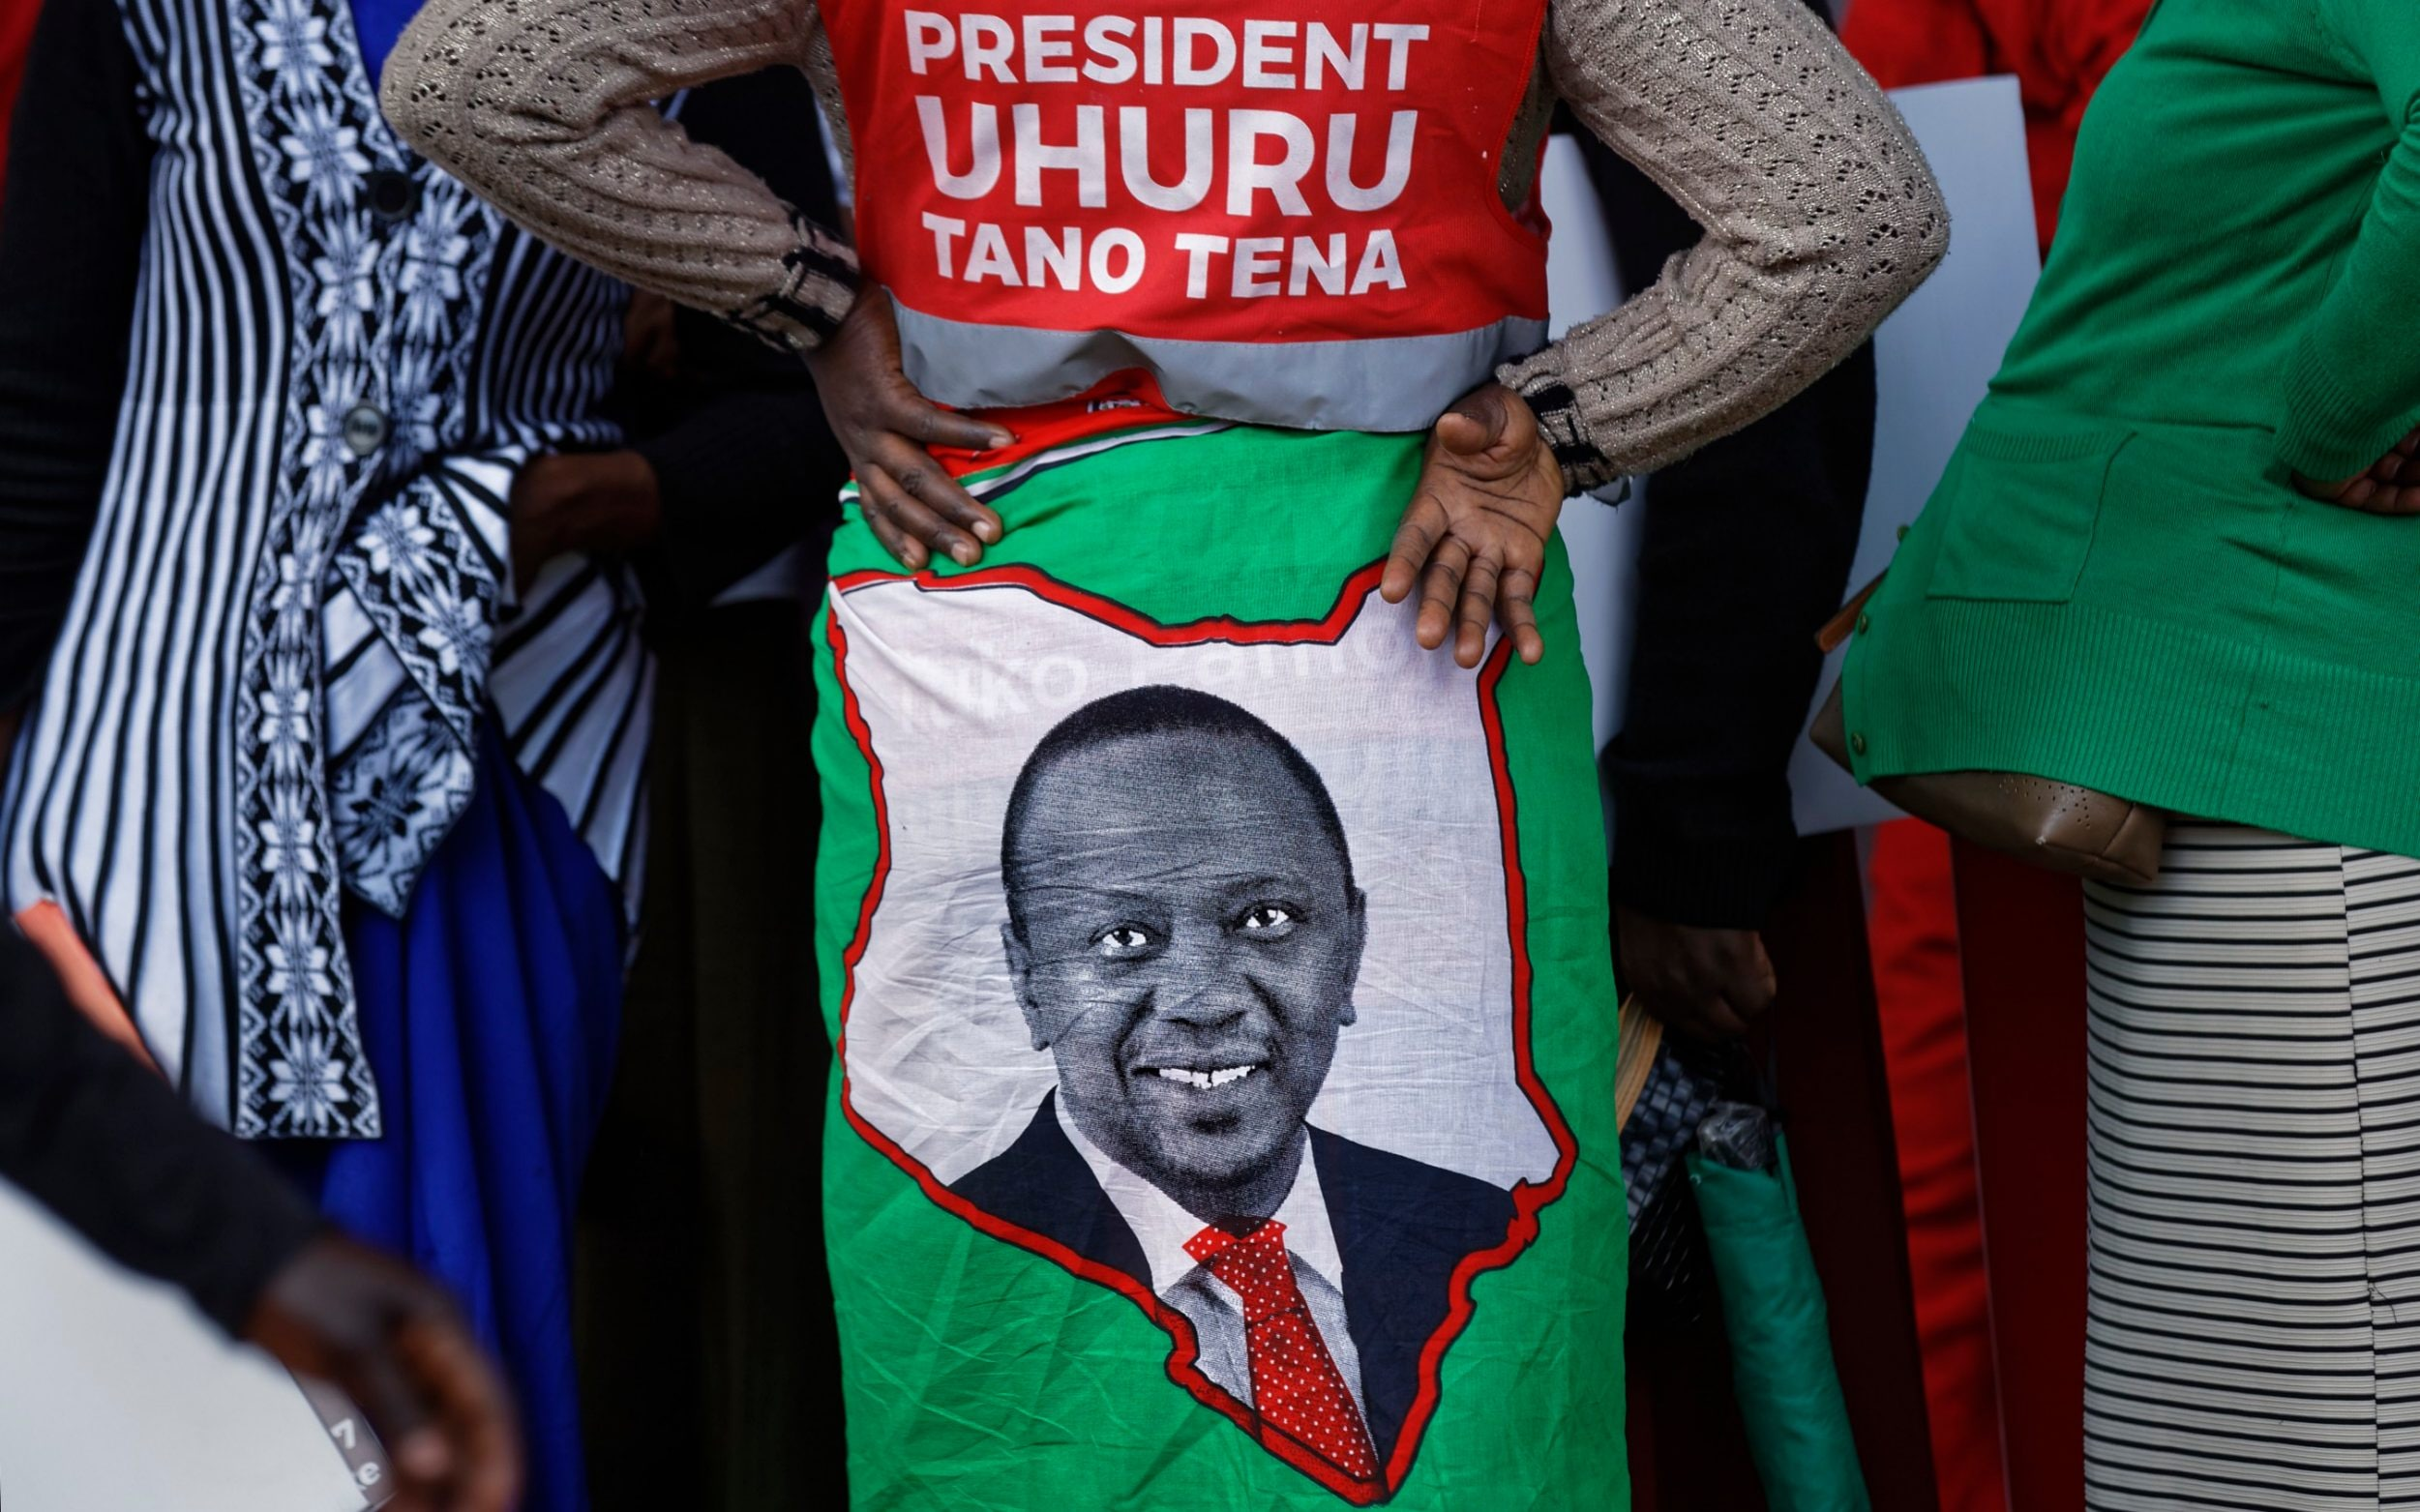 A supporter wears a cloth wrap showing Kenya's incumbent President Uhuru Kenyatta